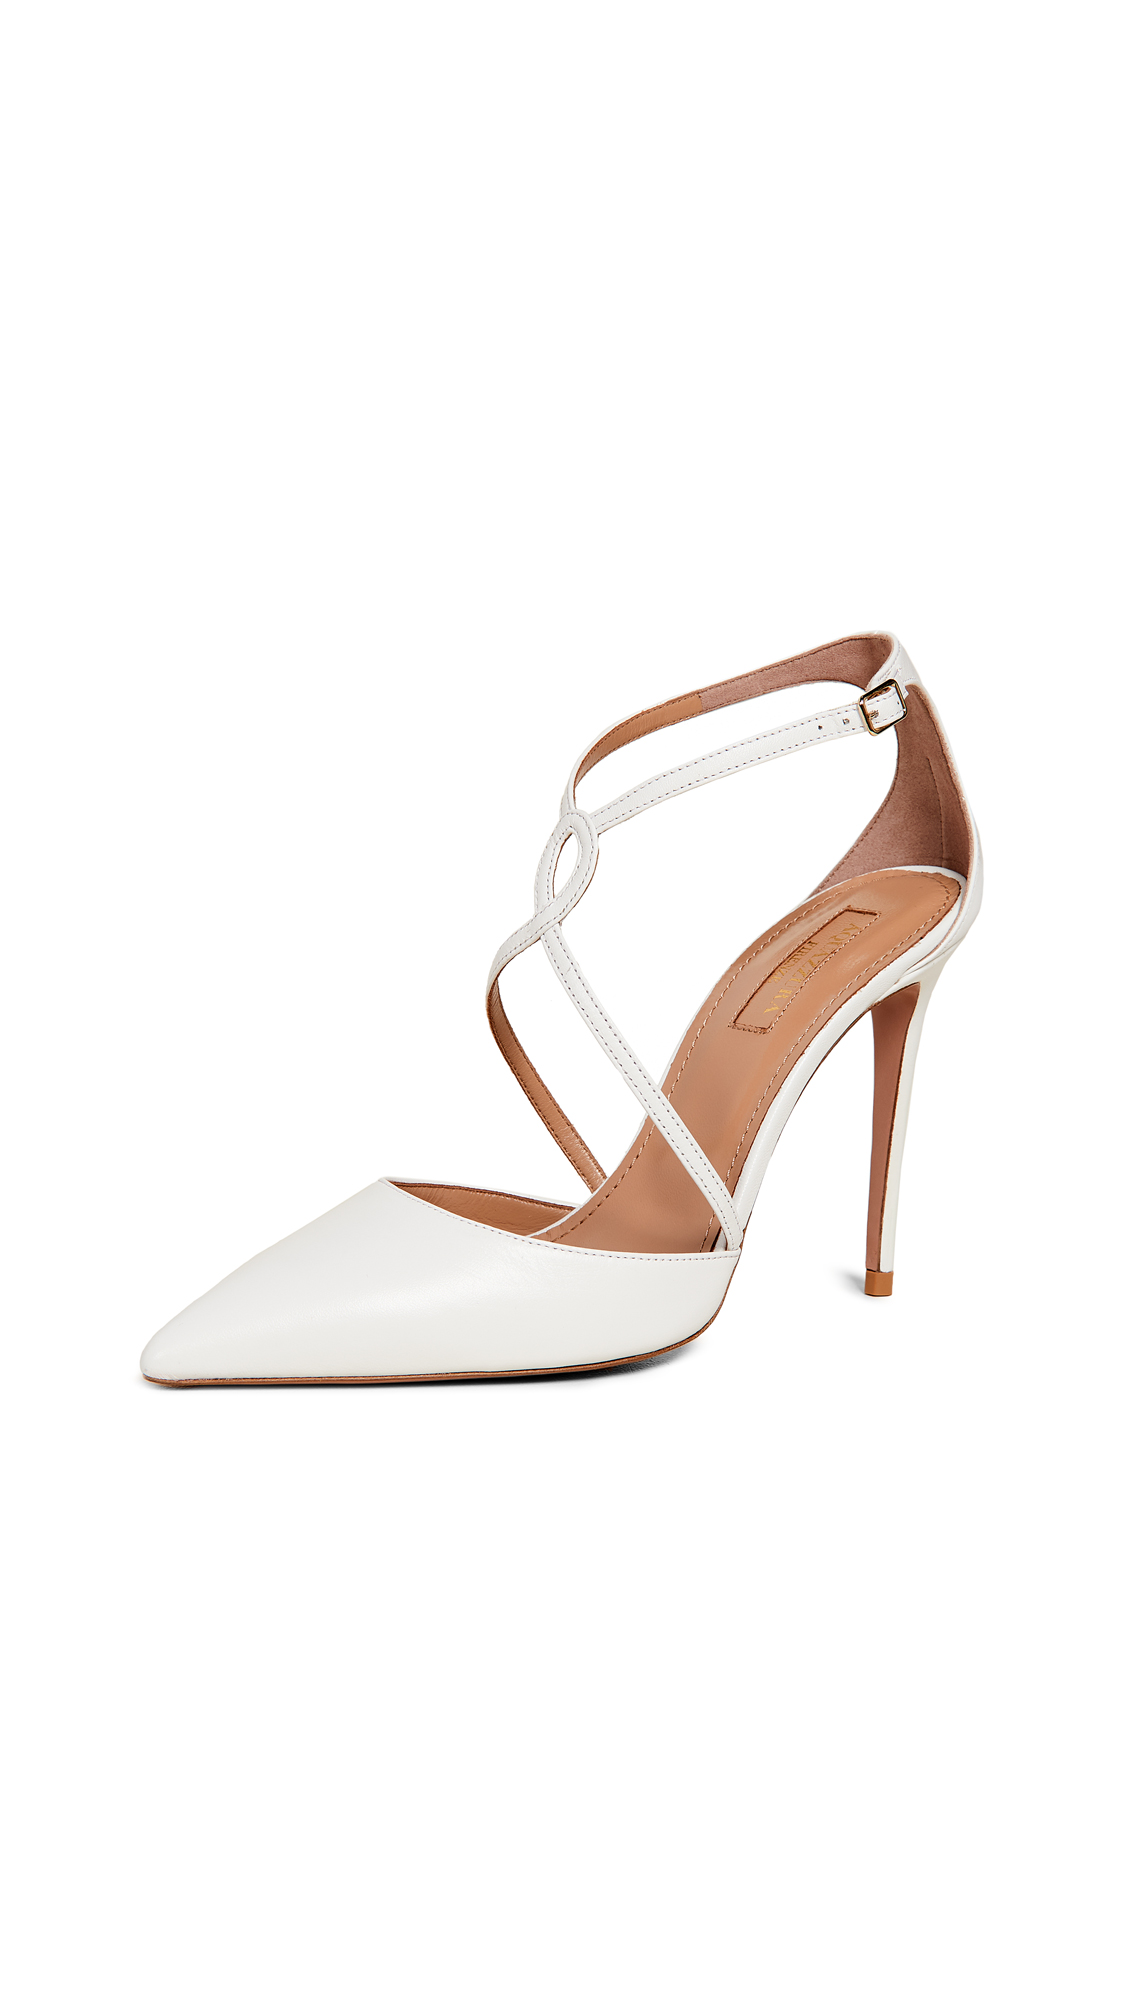 Aquazzura Charisma 105 Pumps - White